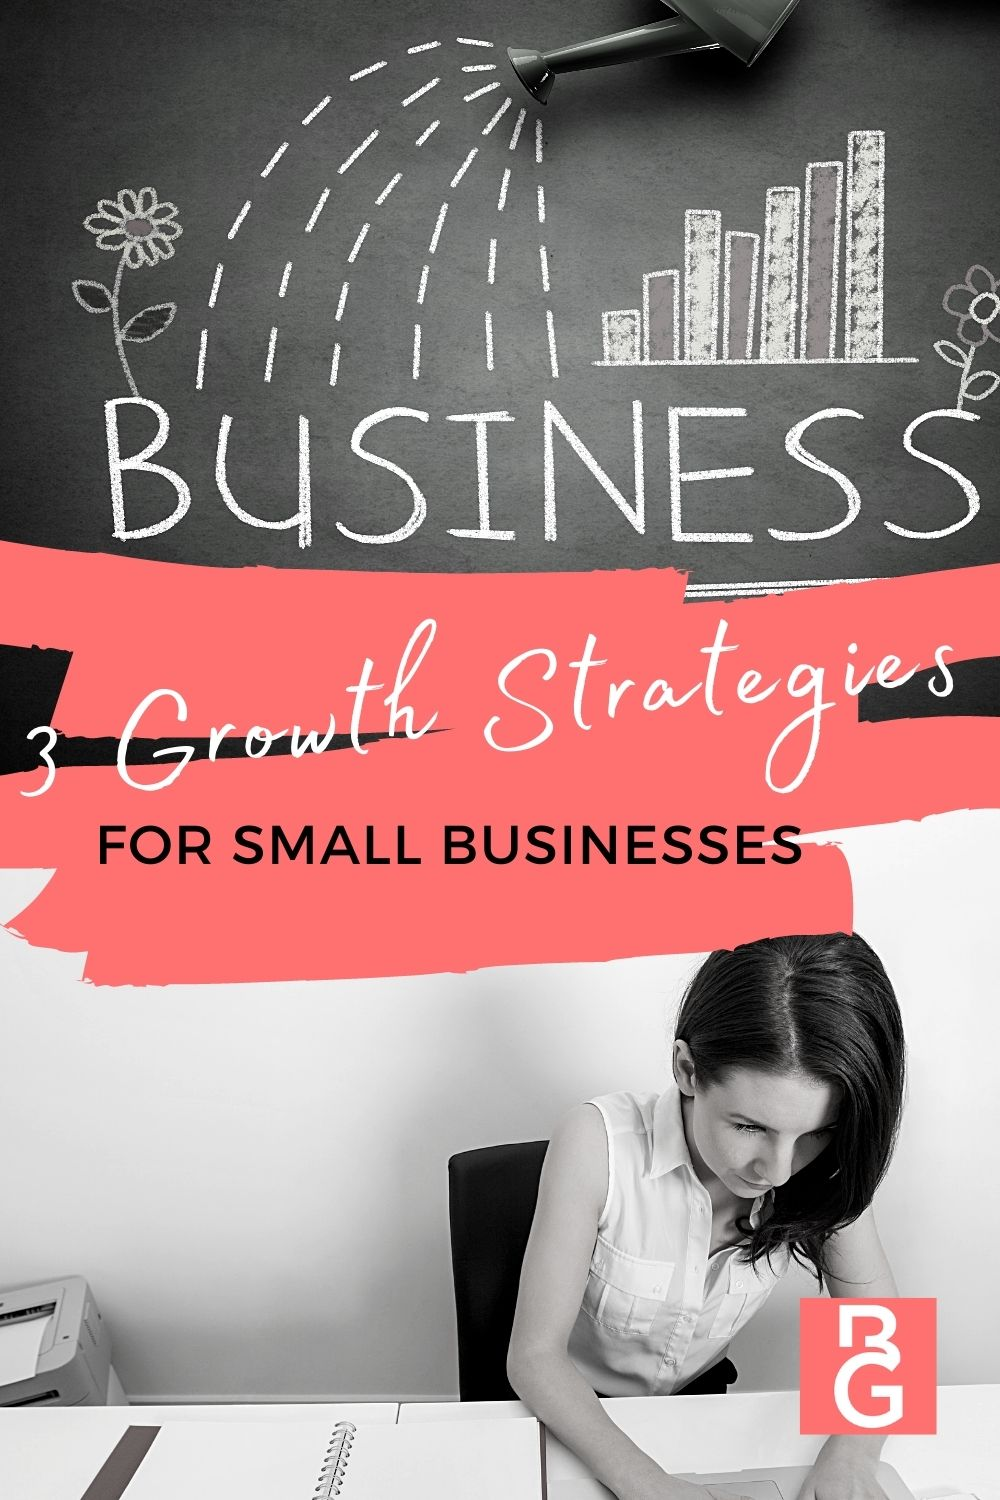 3 Growth Strategies for Small Businesses